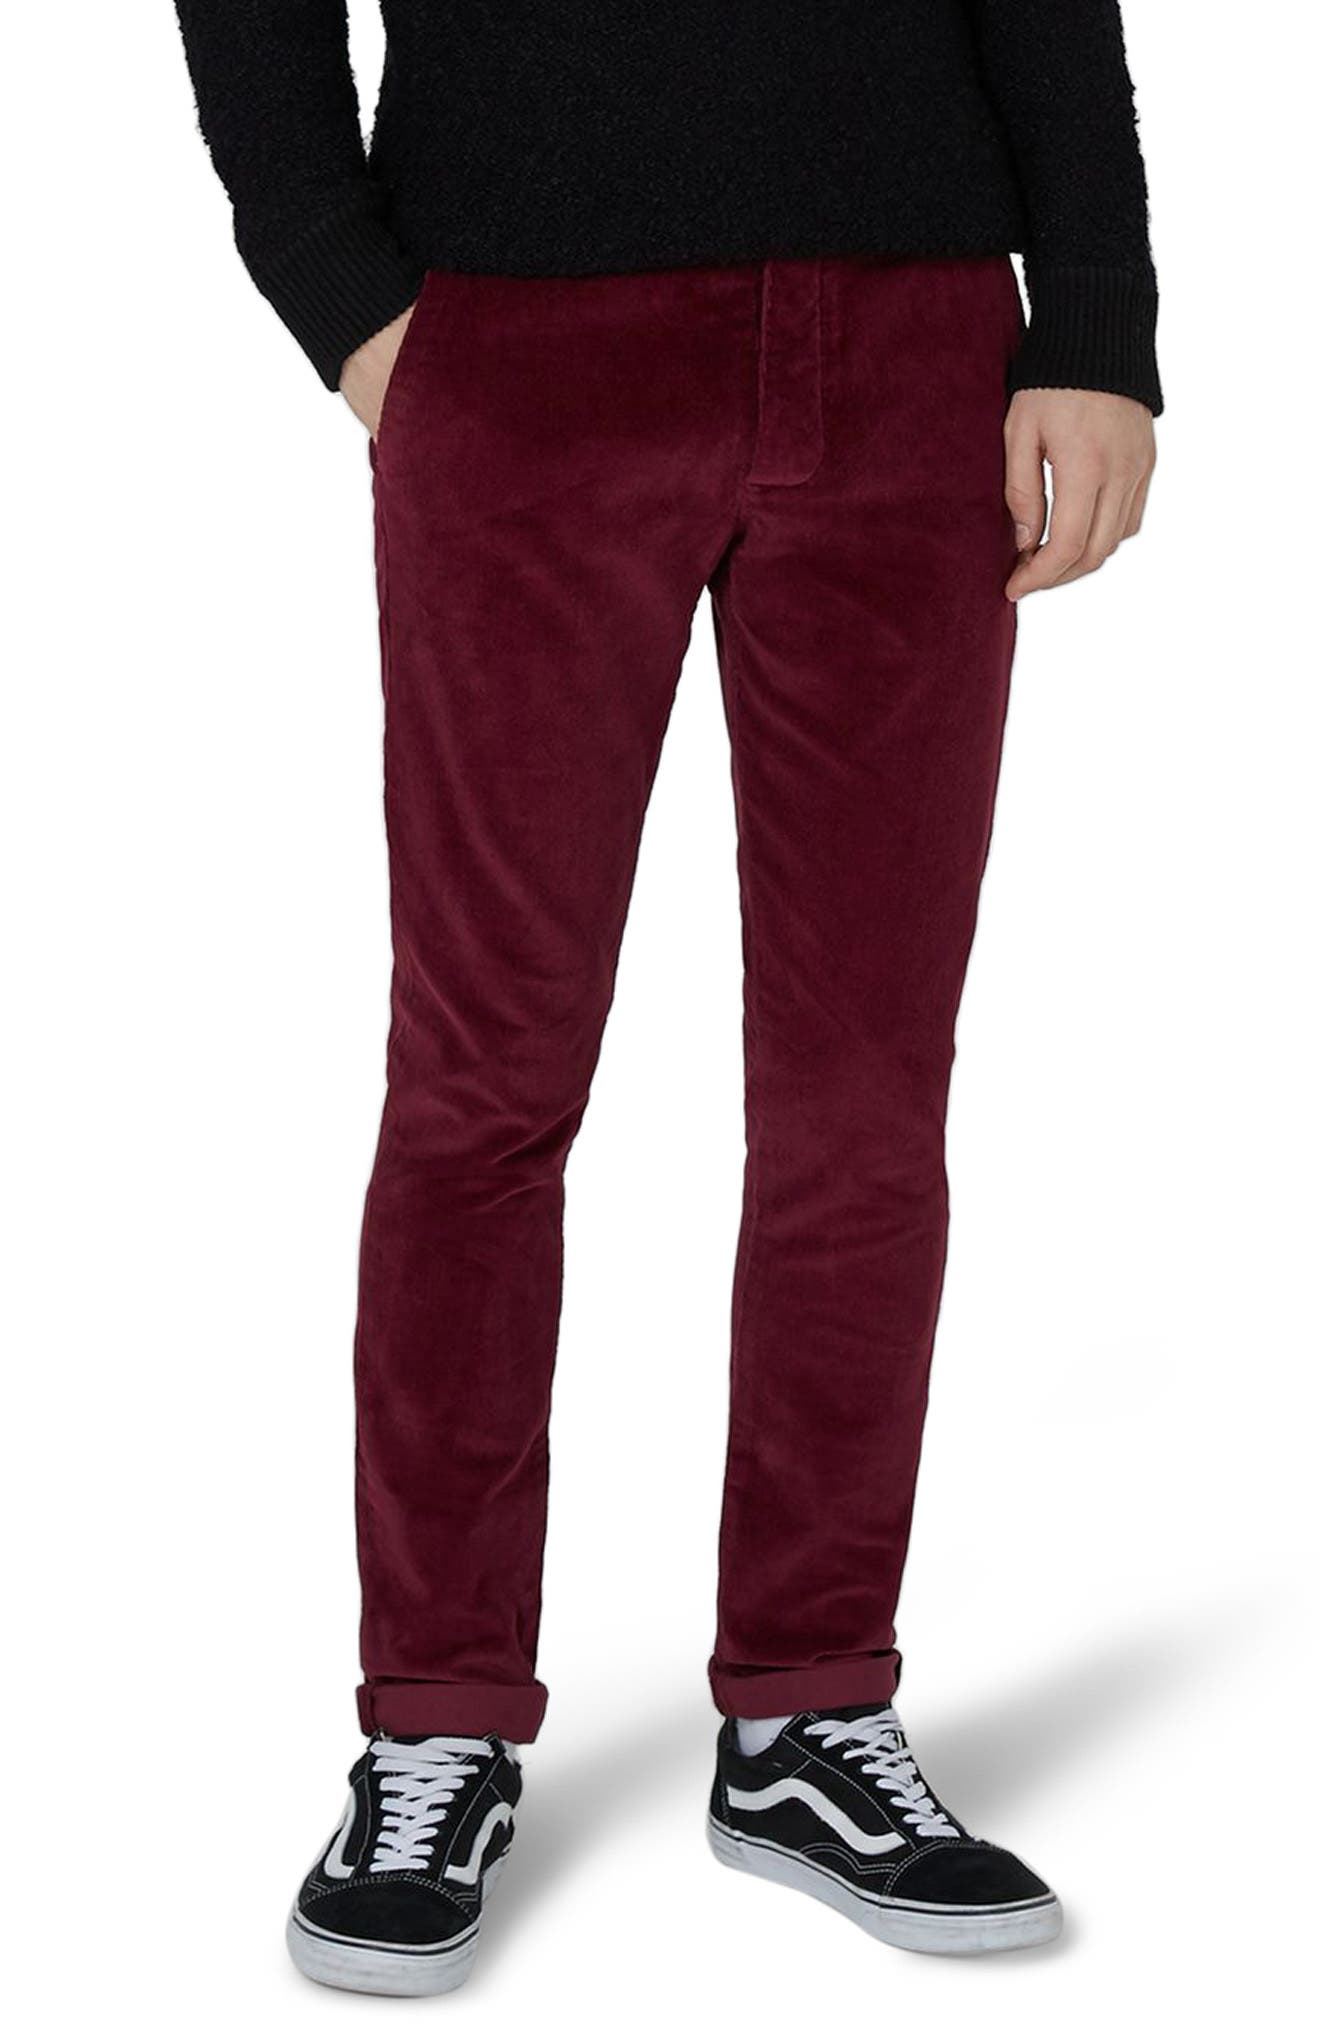 Skinny Fit Corduroy Trousers,                             Main thumbnail 1, color,                             Burgundy